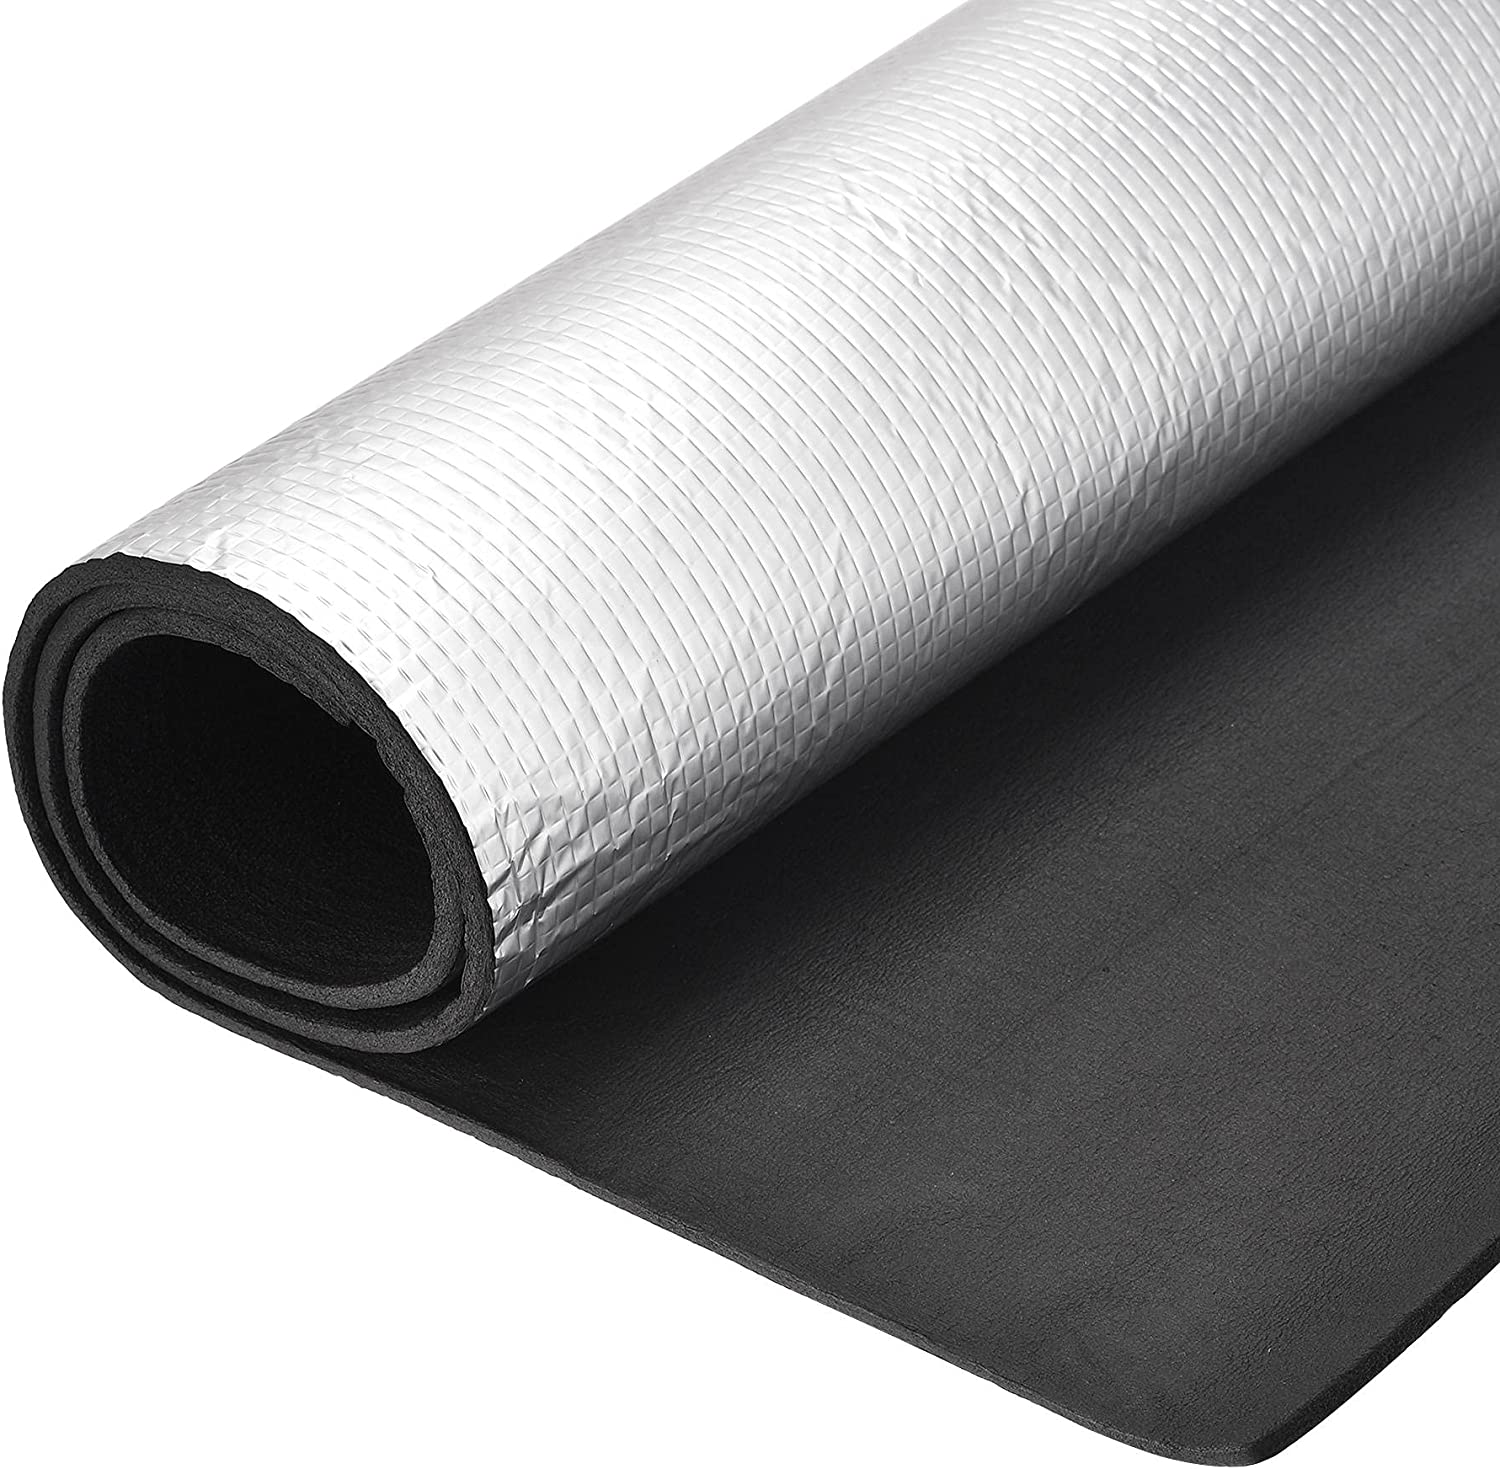 uxcell Insulation Max 58% OFF Sheet 1mx0.5mx5mm Foil Aluminum Embossed Wate Max 43% OFF